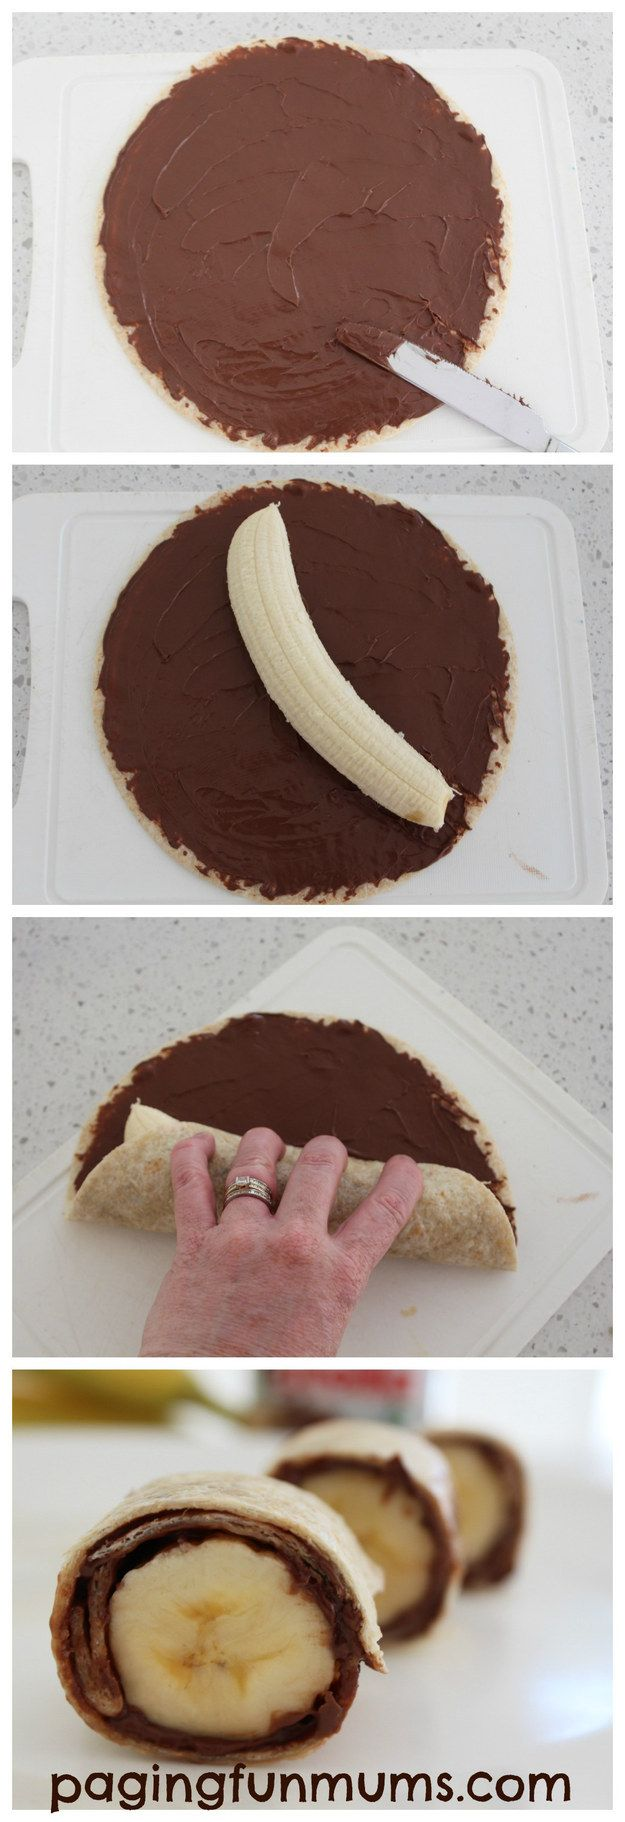 And lastly, make a plate of nutella and banana sushi, then drop the mic and walk away.